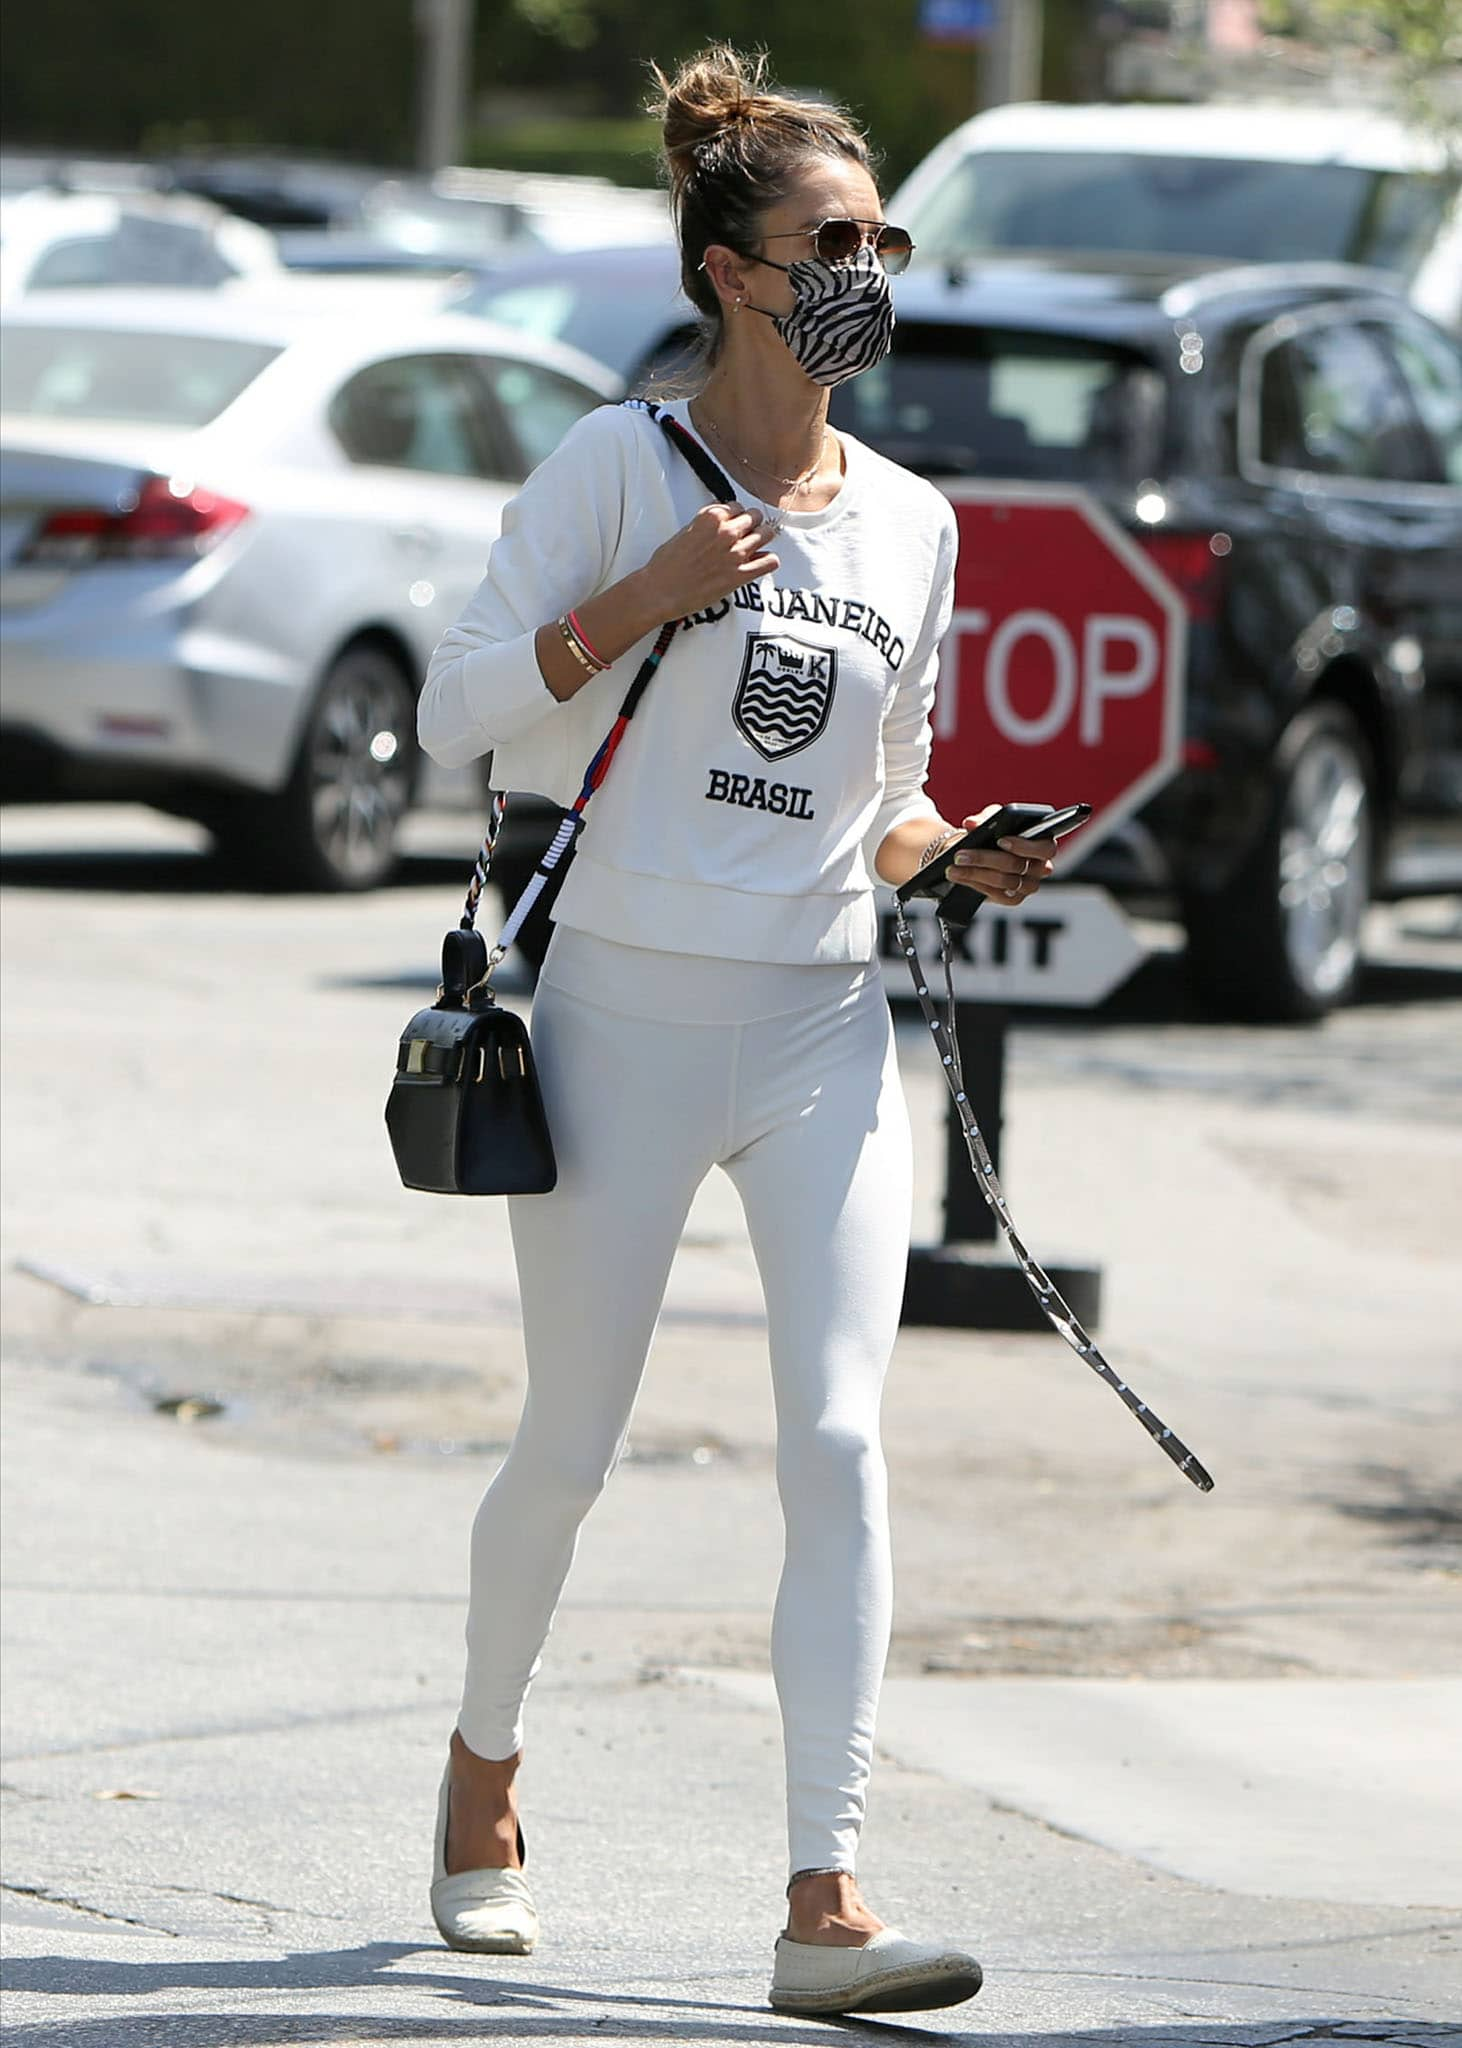 Alessandra Ambrosio heads to gym in white Brasil sweater and white leggings on April 15, 2021